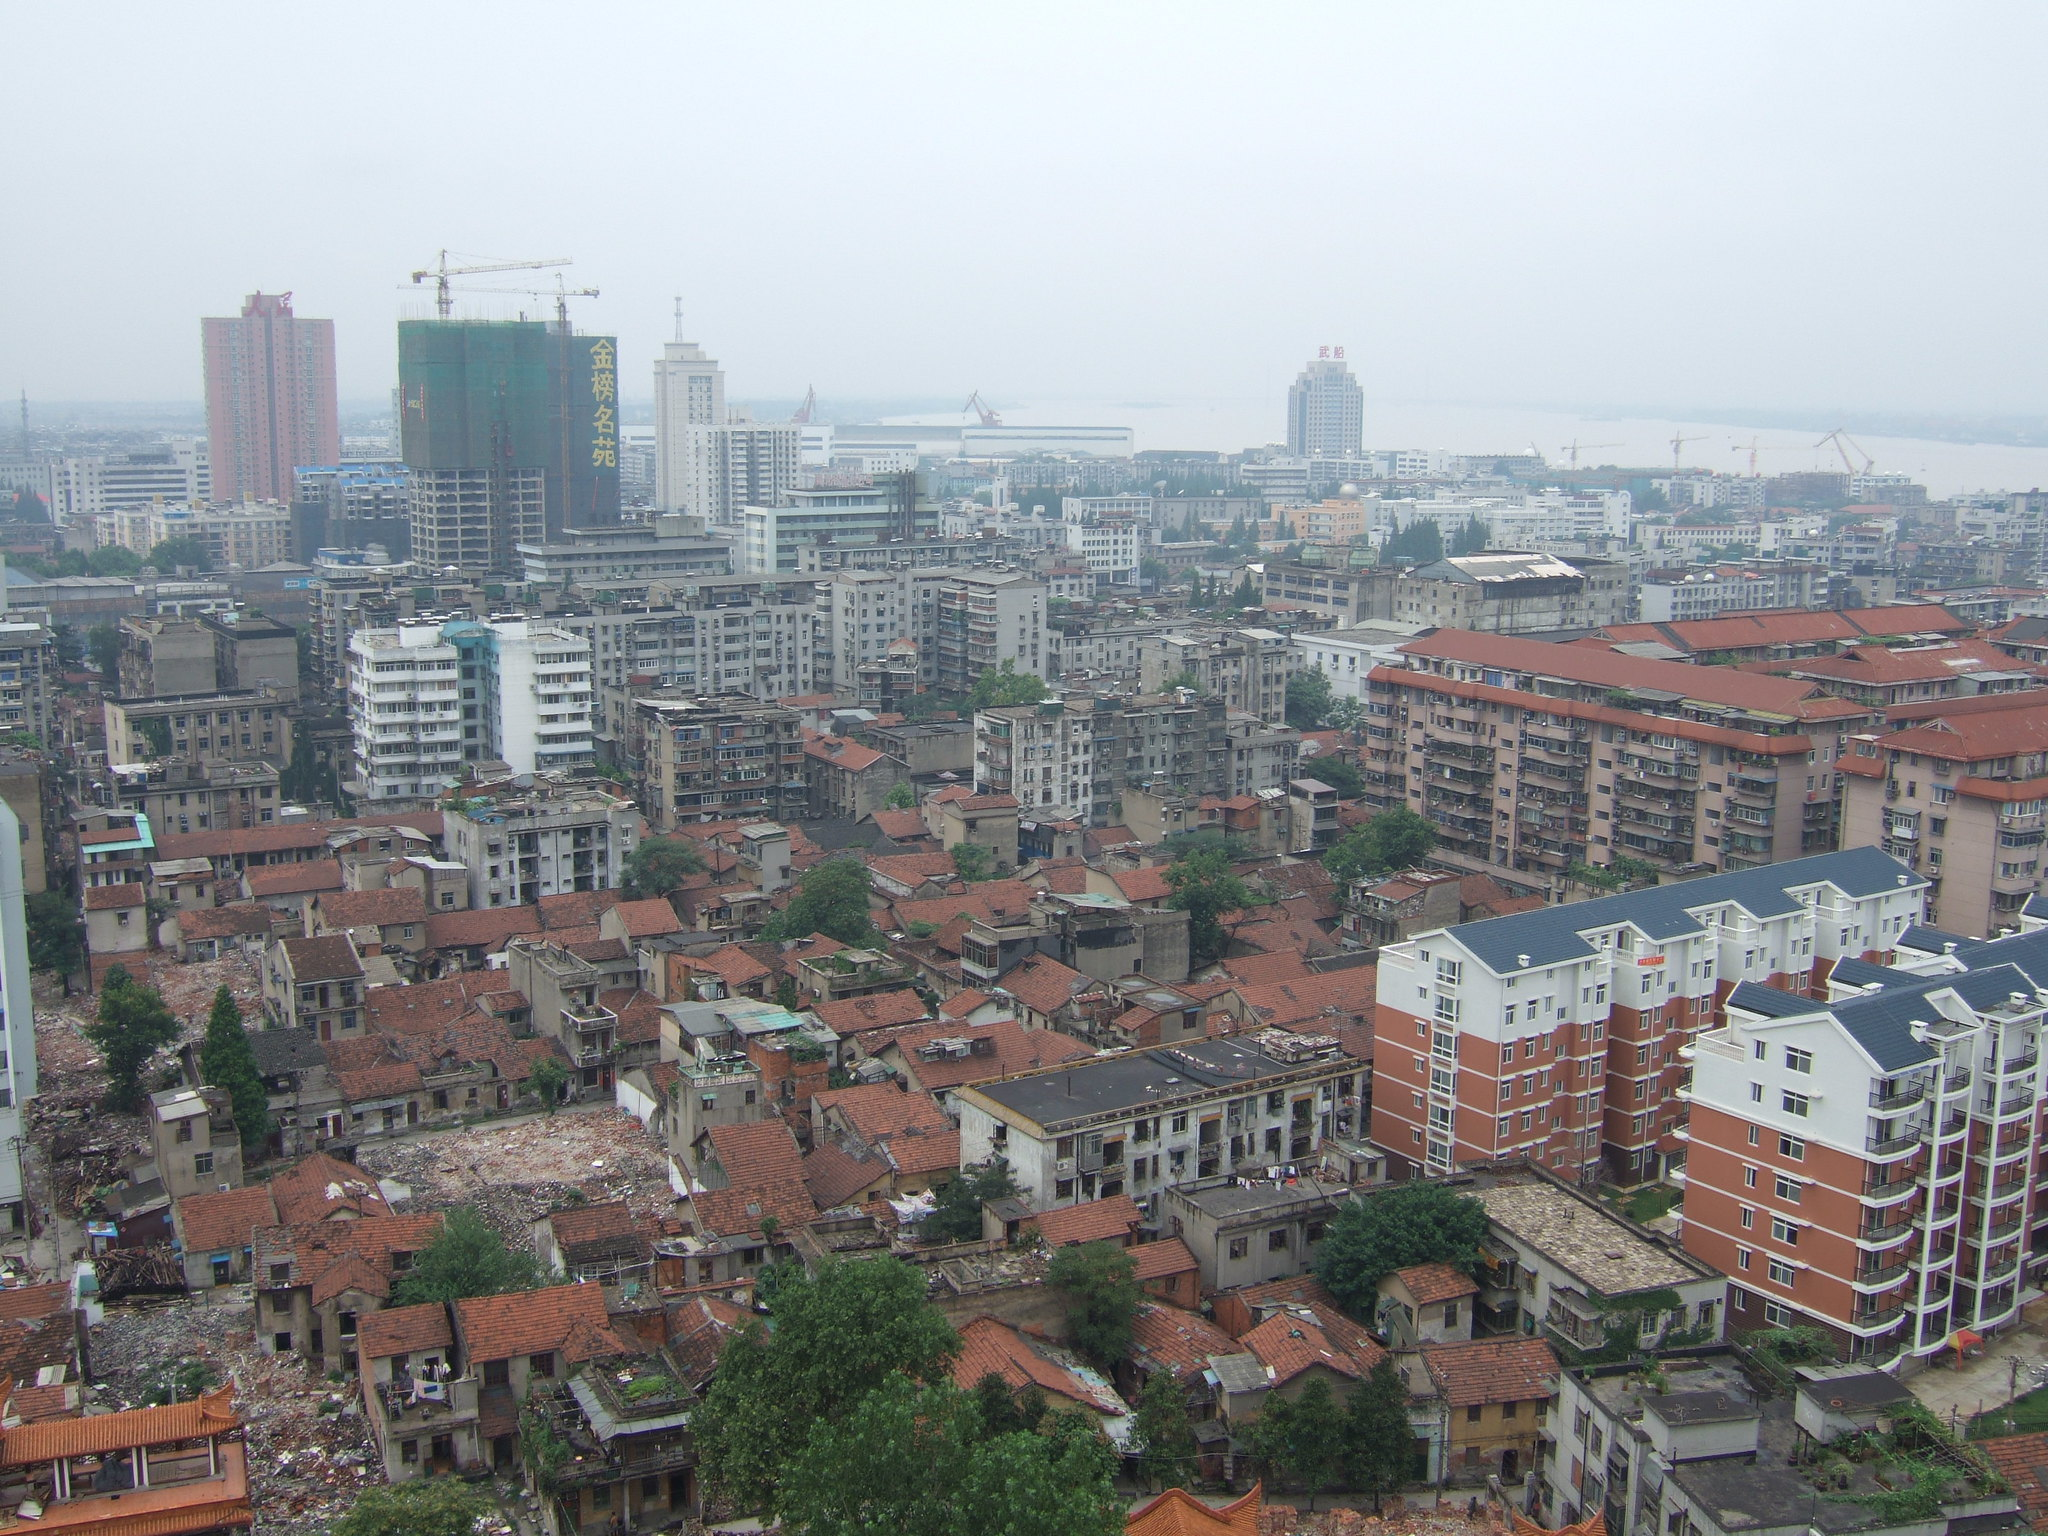 a skyline view of Wuhan, the Chinese city formerly locked down